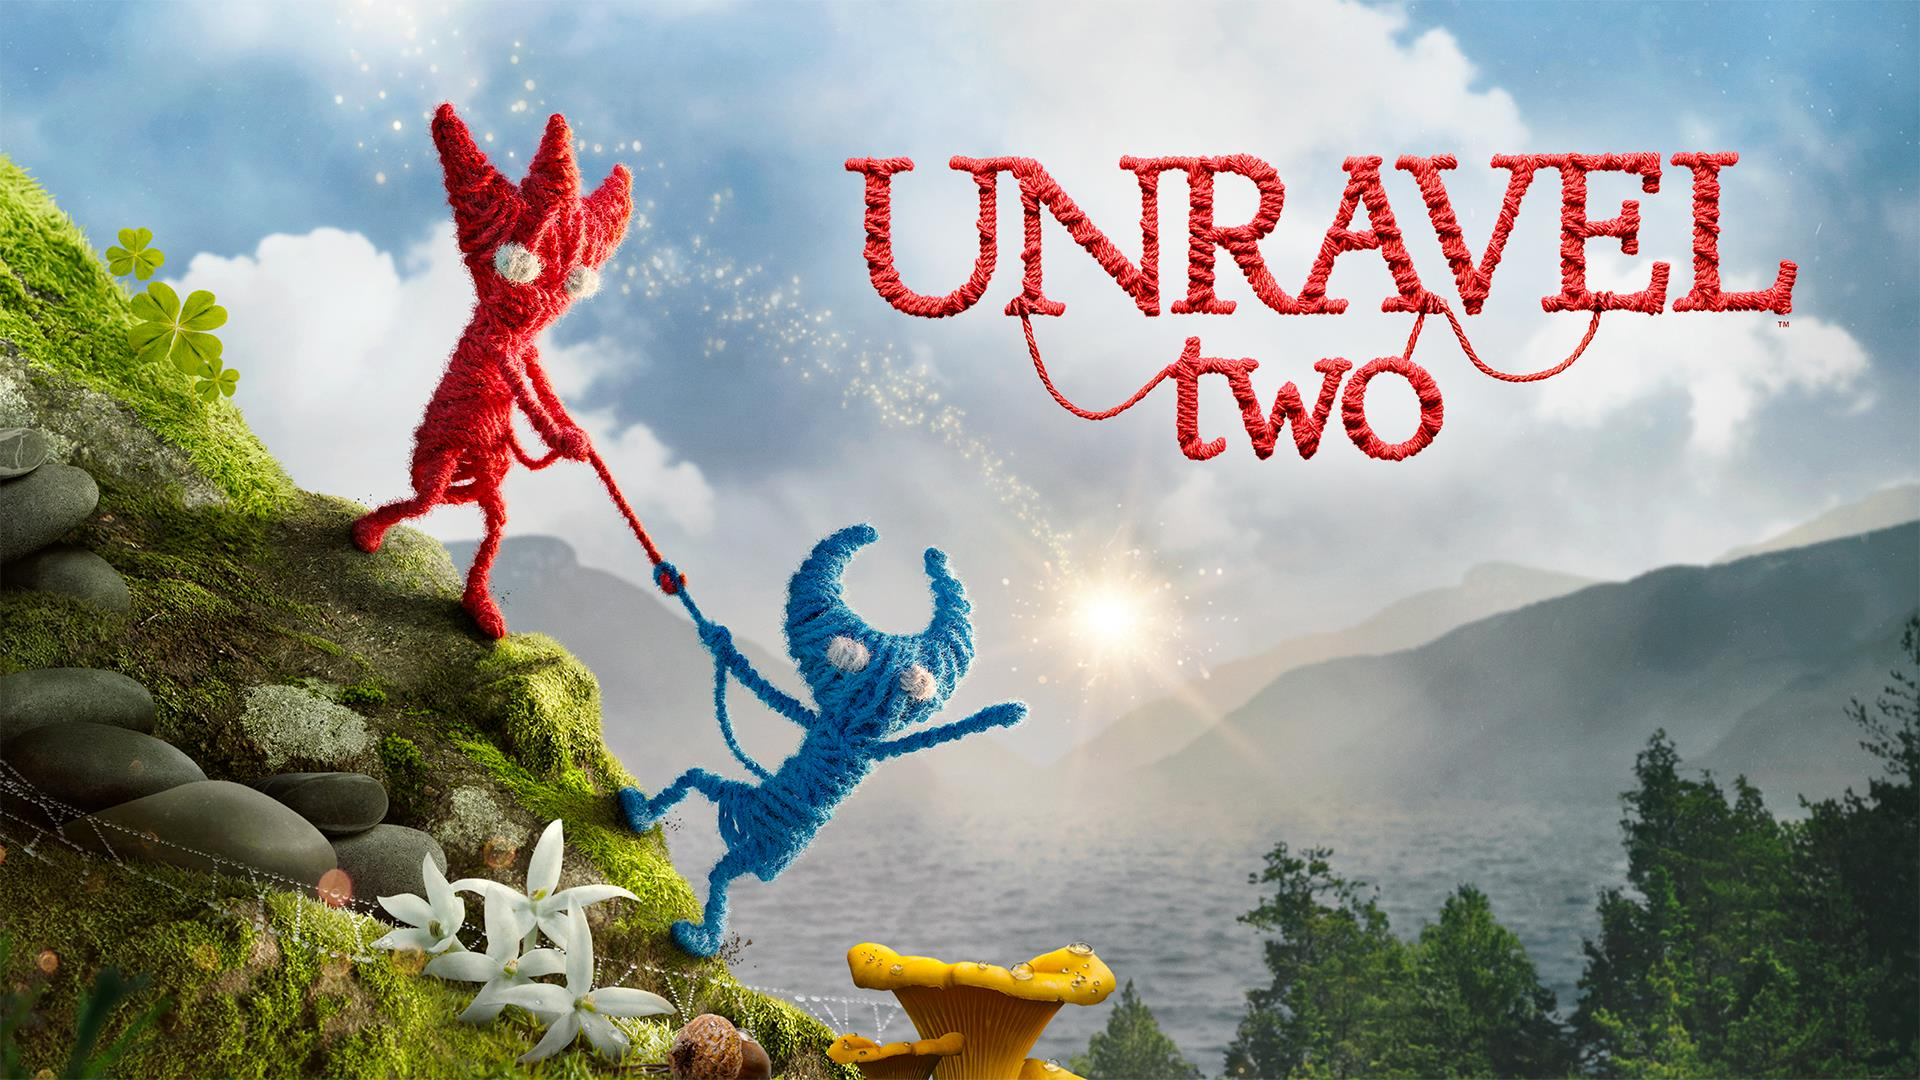 E3 2018 - Unravel two